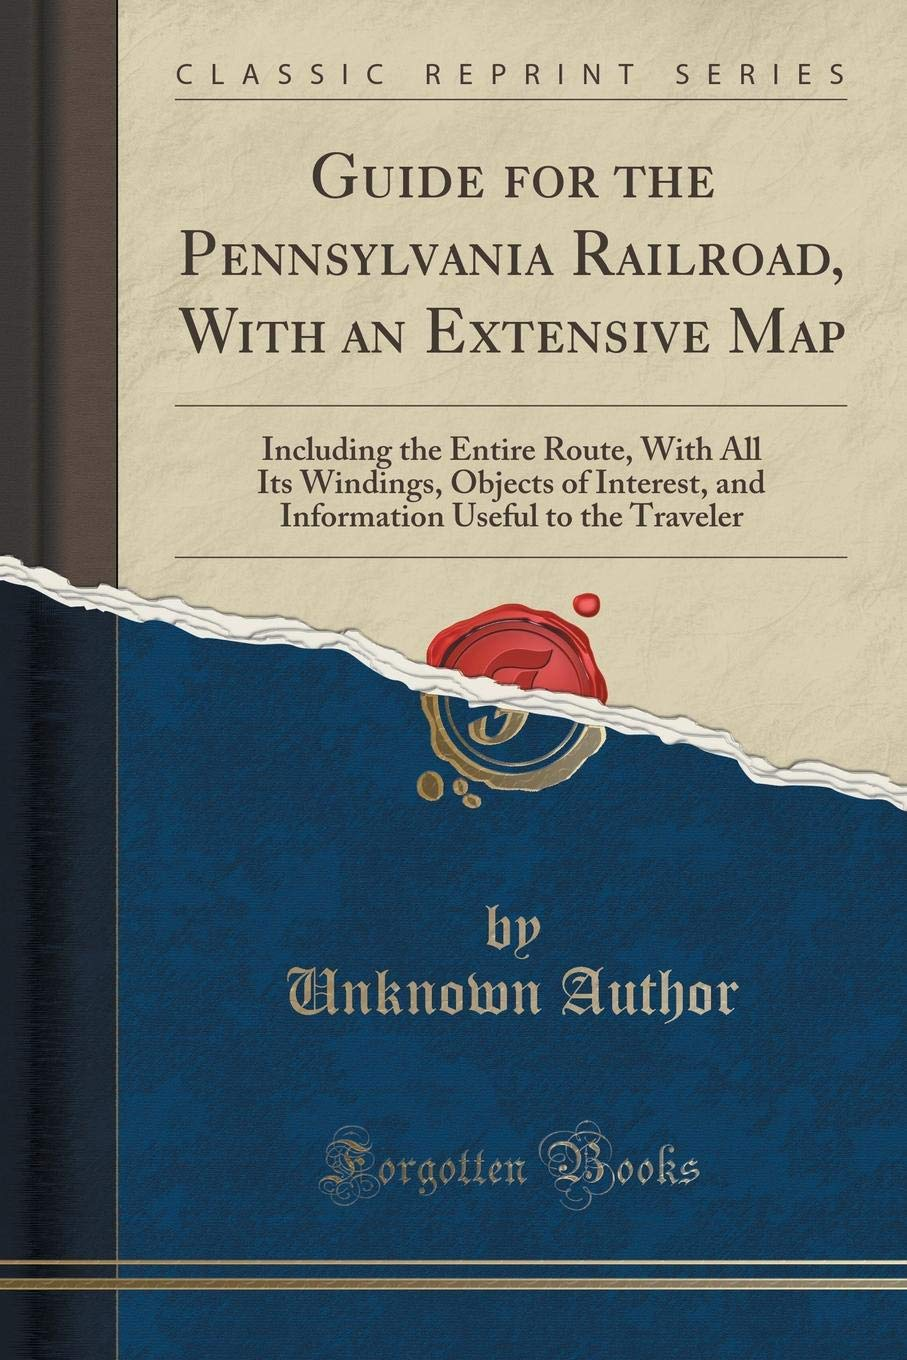 Download Guide for the Pennsylvania Railroad, With an Extensive Map: Including the Entire Route, With All Its Windings, Objects of Interest, and Information Useful to the Traveler (Classic Reprint) pdf